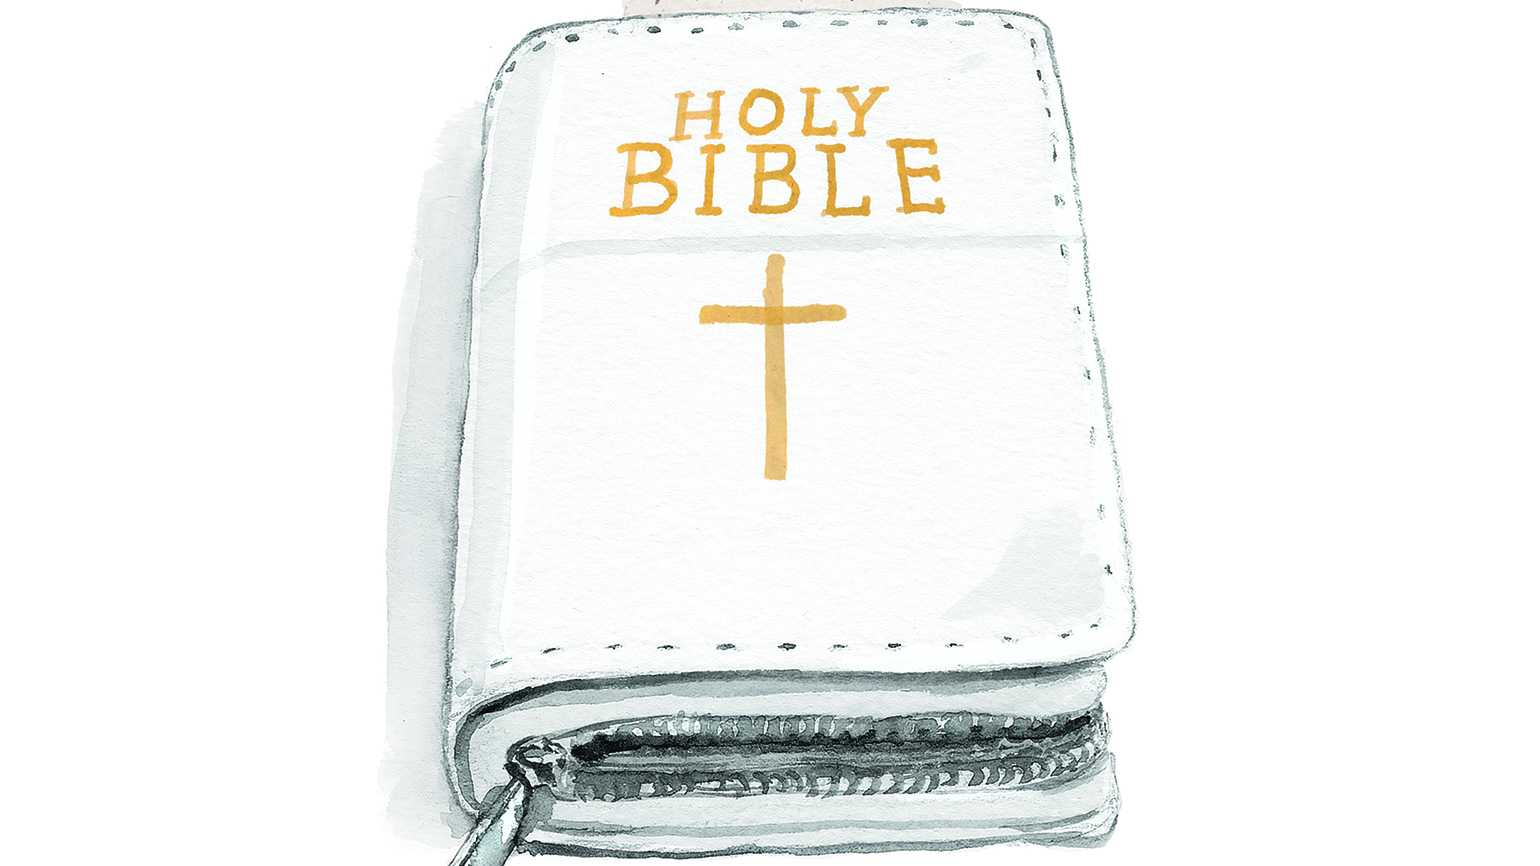 Illustration of a white bible